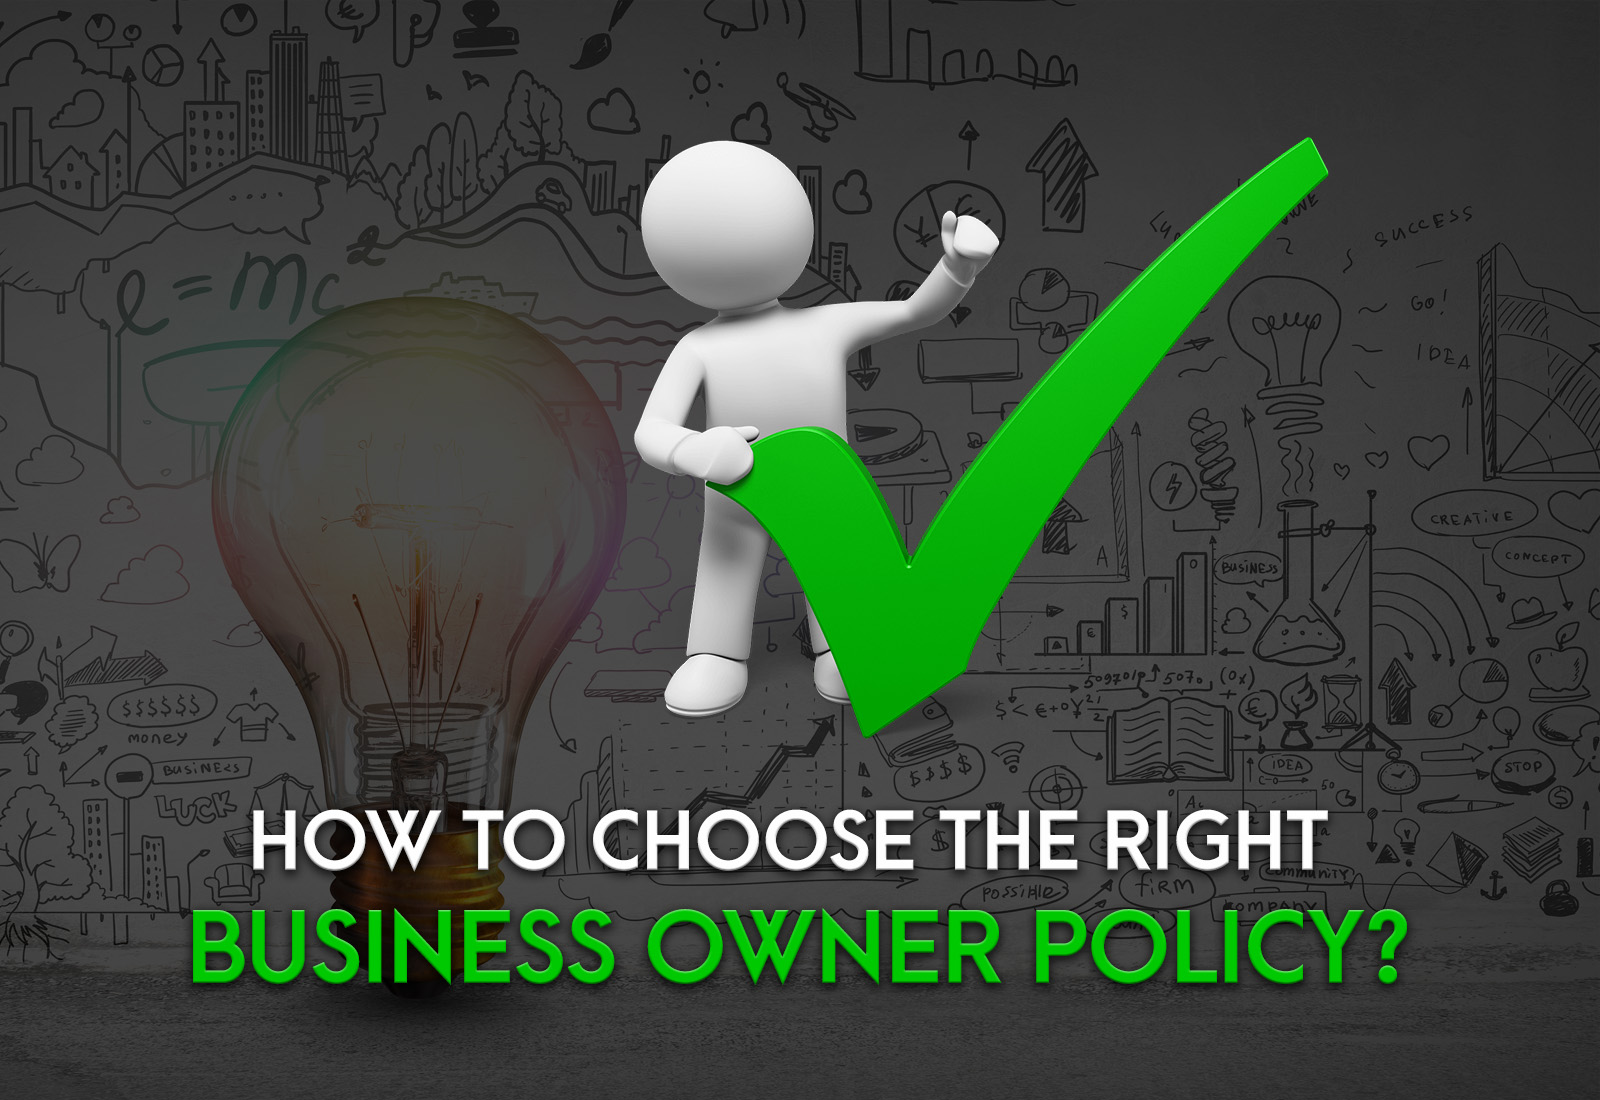 How to Choose the Right Business Owner Policy?